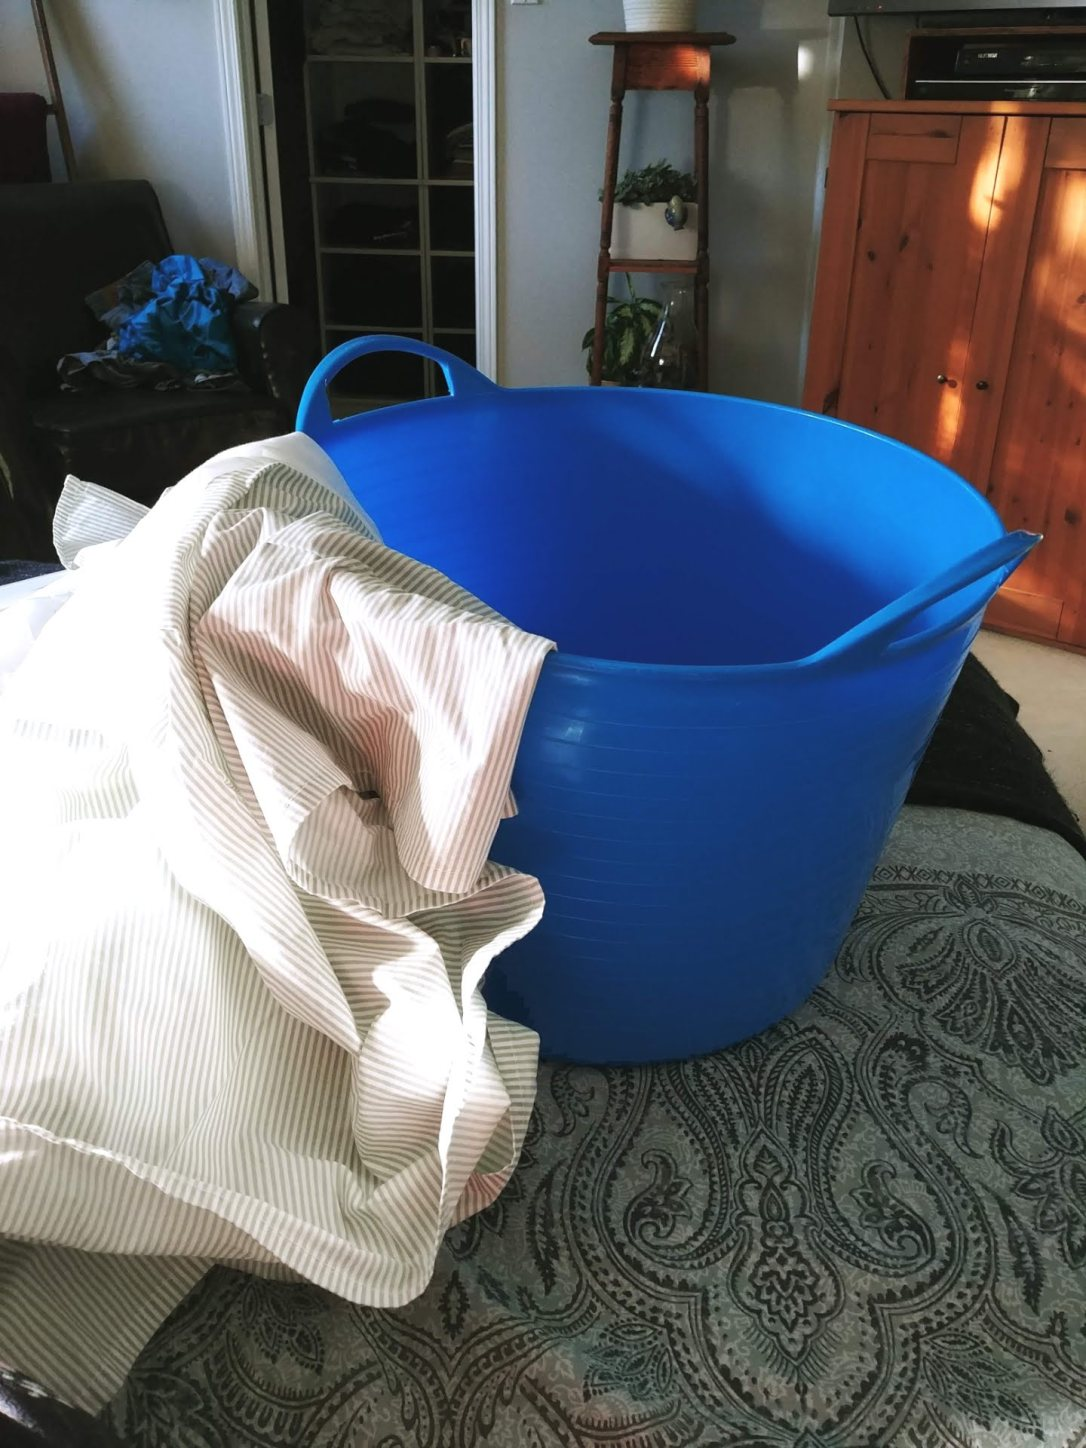 Blue Bucket Before